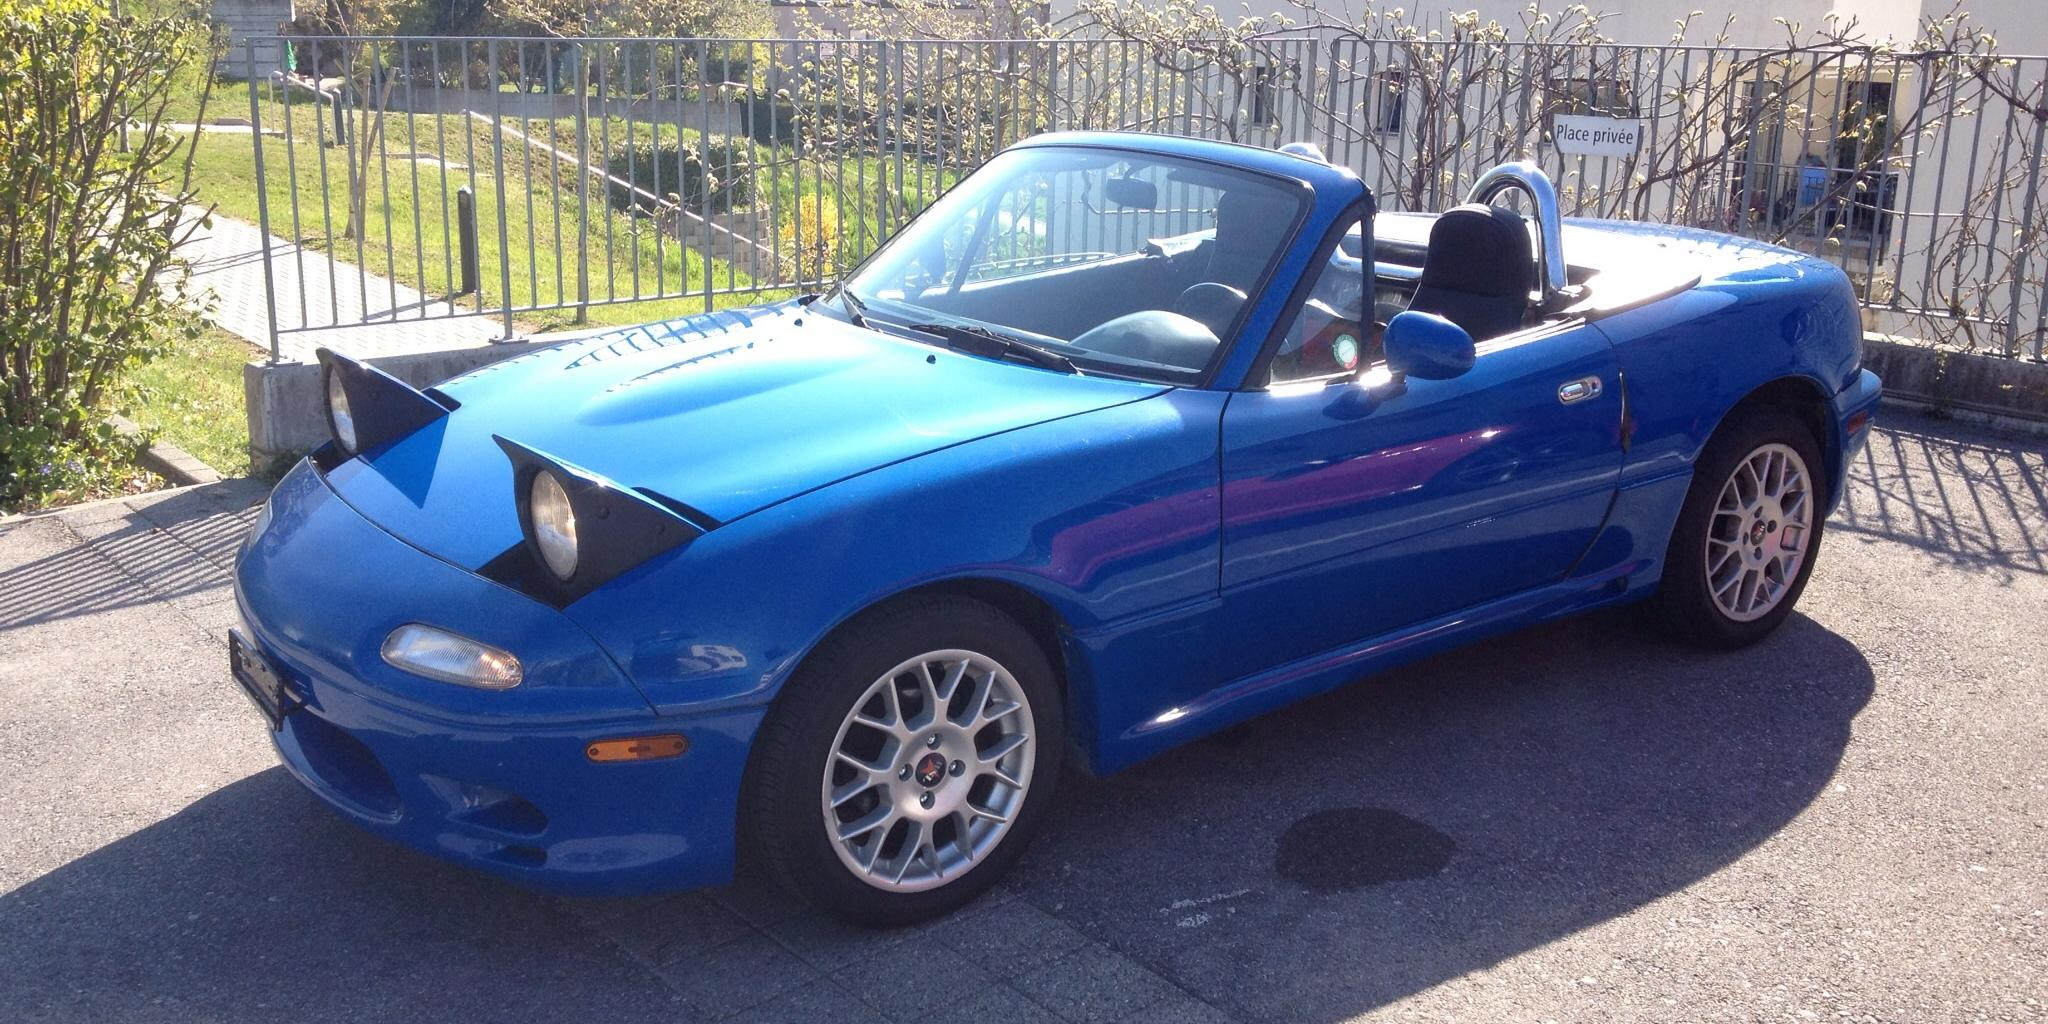 1991 Mazda Miata-MX-5